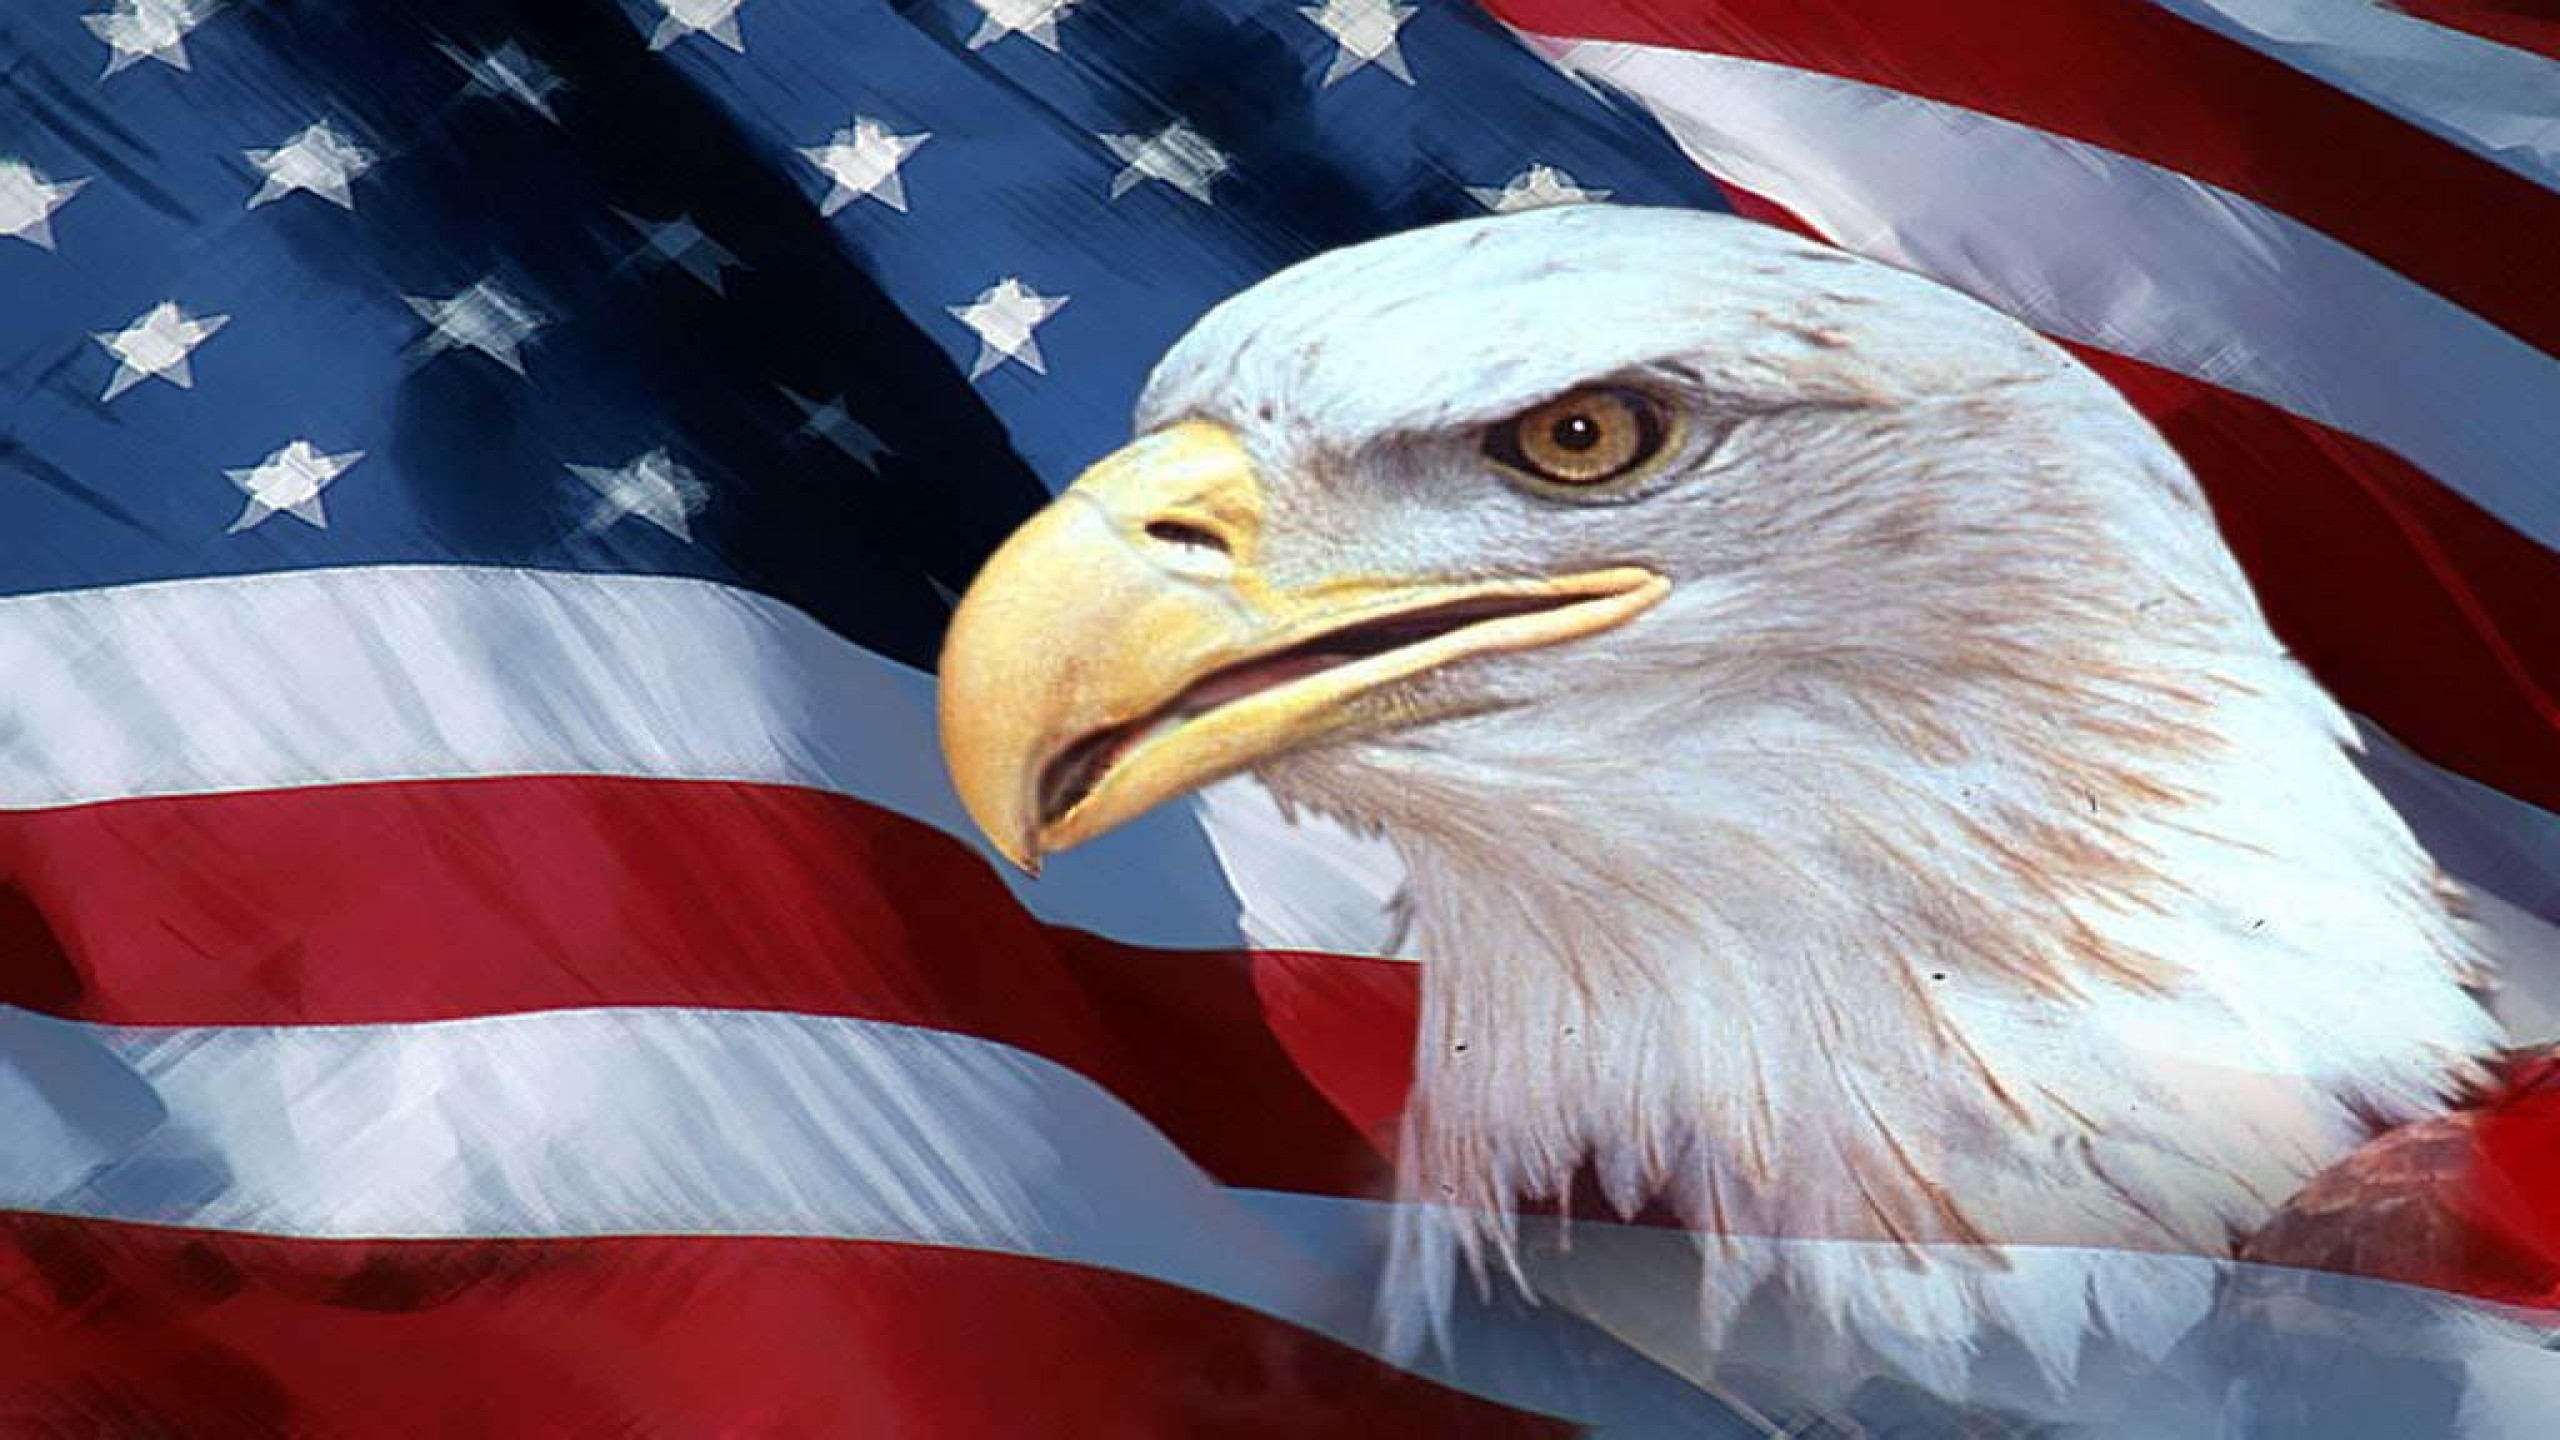 2560x1440 american-flag-wallpaper-1024x768-eagle